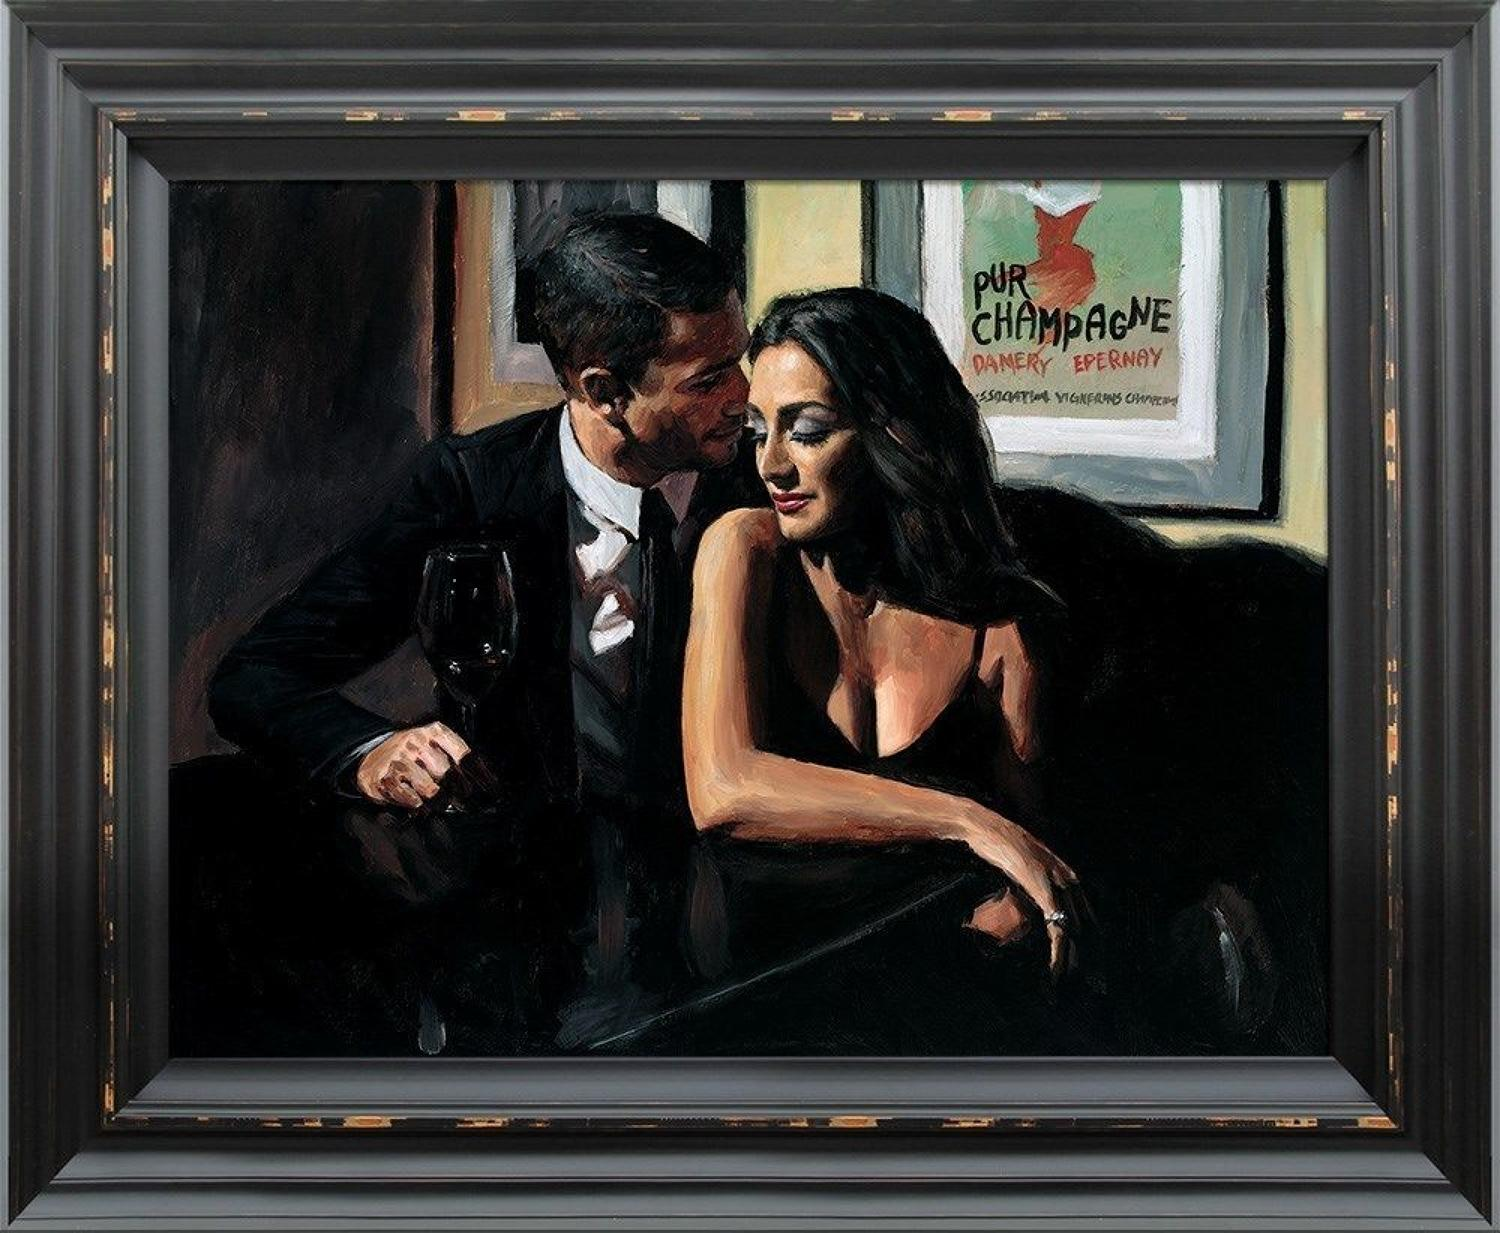 Proposal at Hotel Du Vin by Fabian Perez Framed Art Print